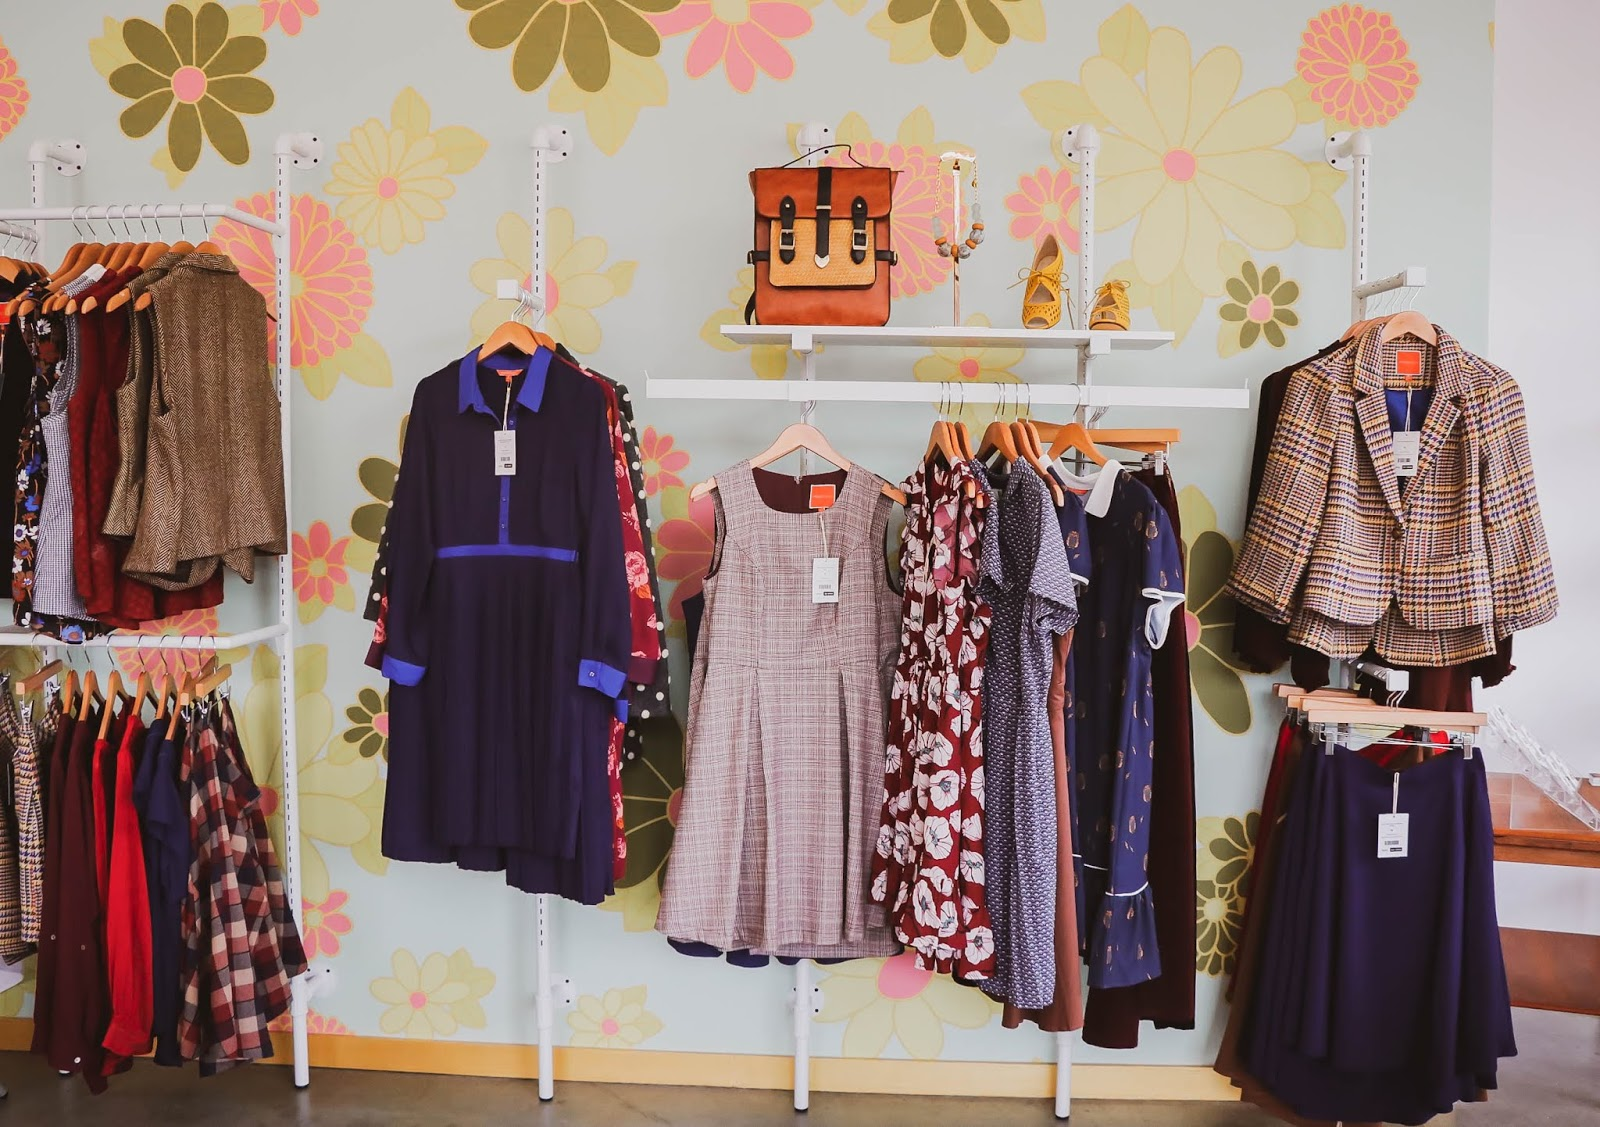 modcloth DC fitshop, Dc lifestyle, store opening, dc love, dc blogger, fashion store, online retailer, shopping, stylist, fashion scene in DC, blogger, lifestyle, clothes, trend talk, myriad musings